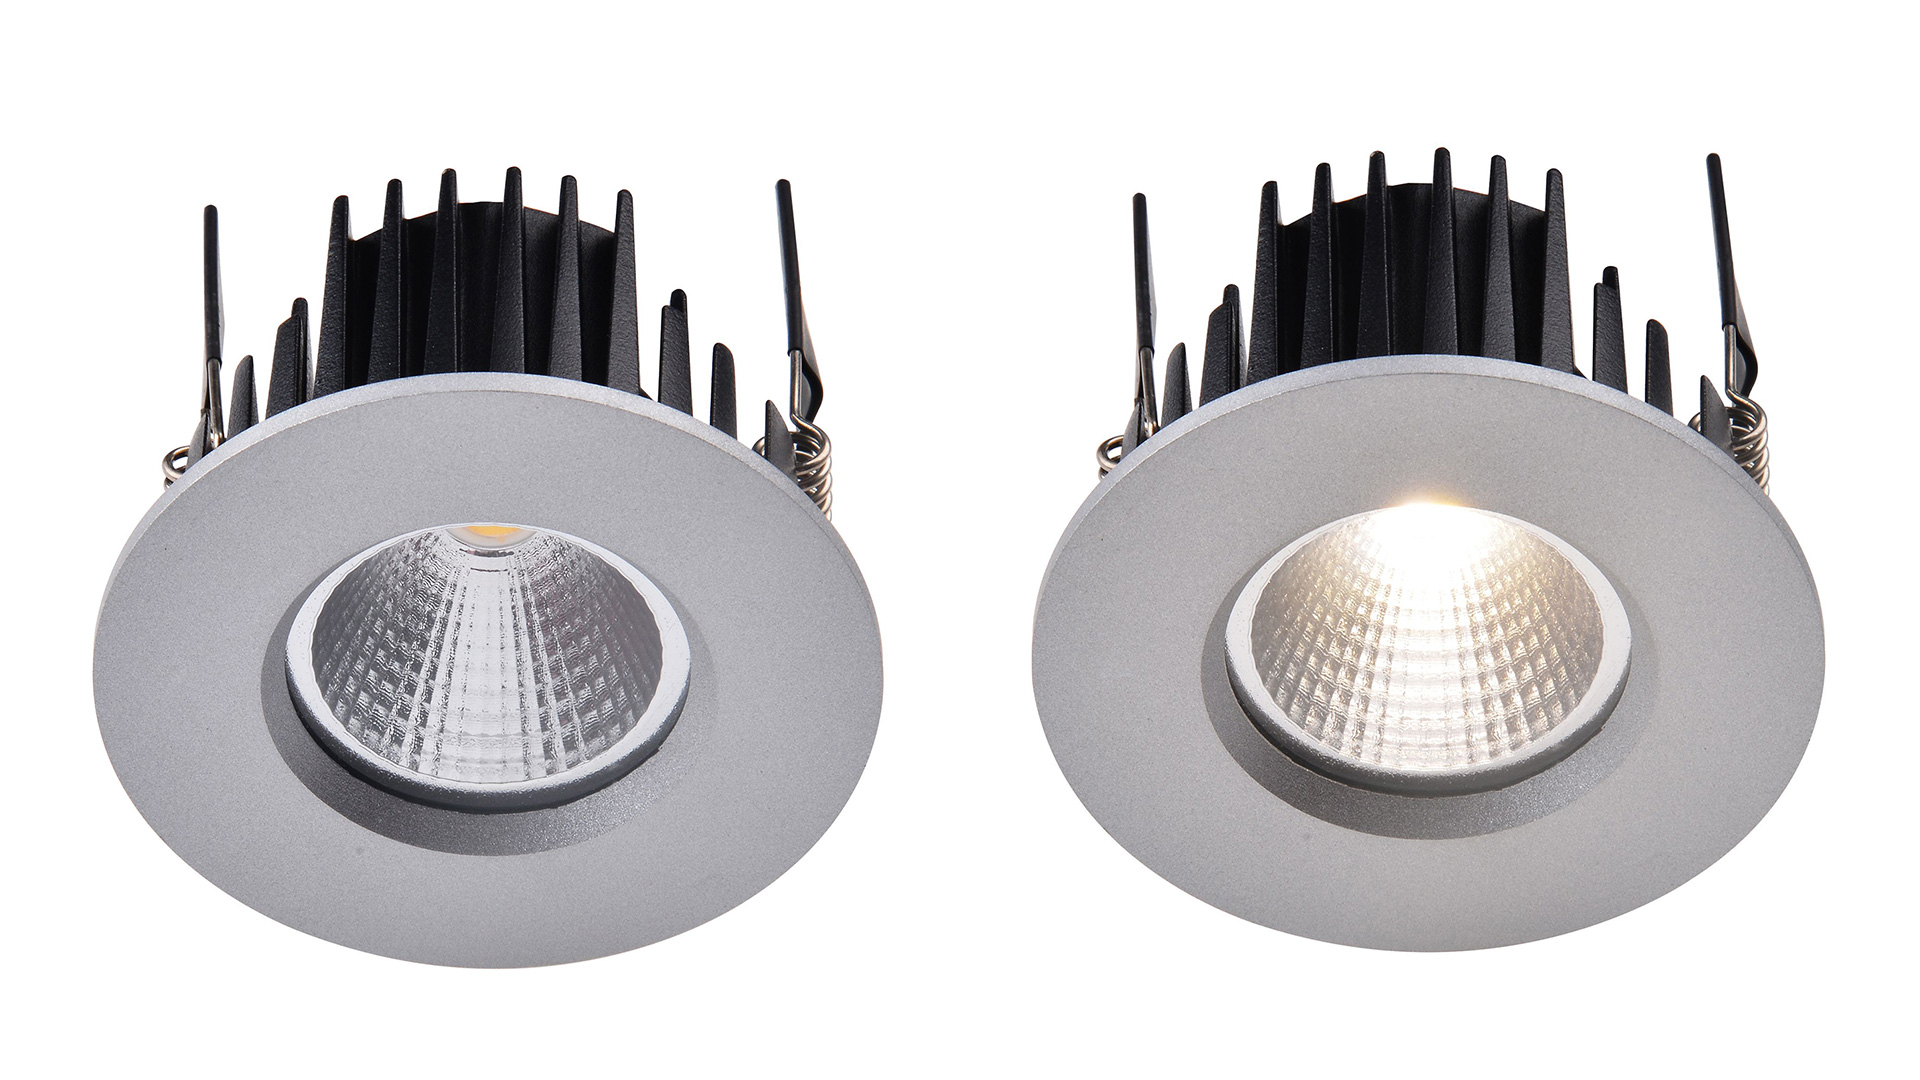 Downlight LED étanche IP65 de 8 watts